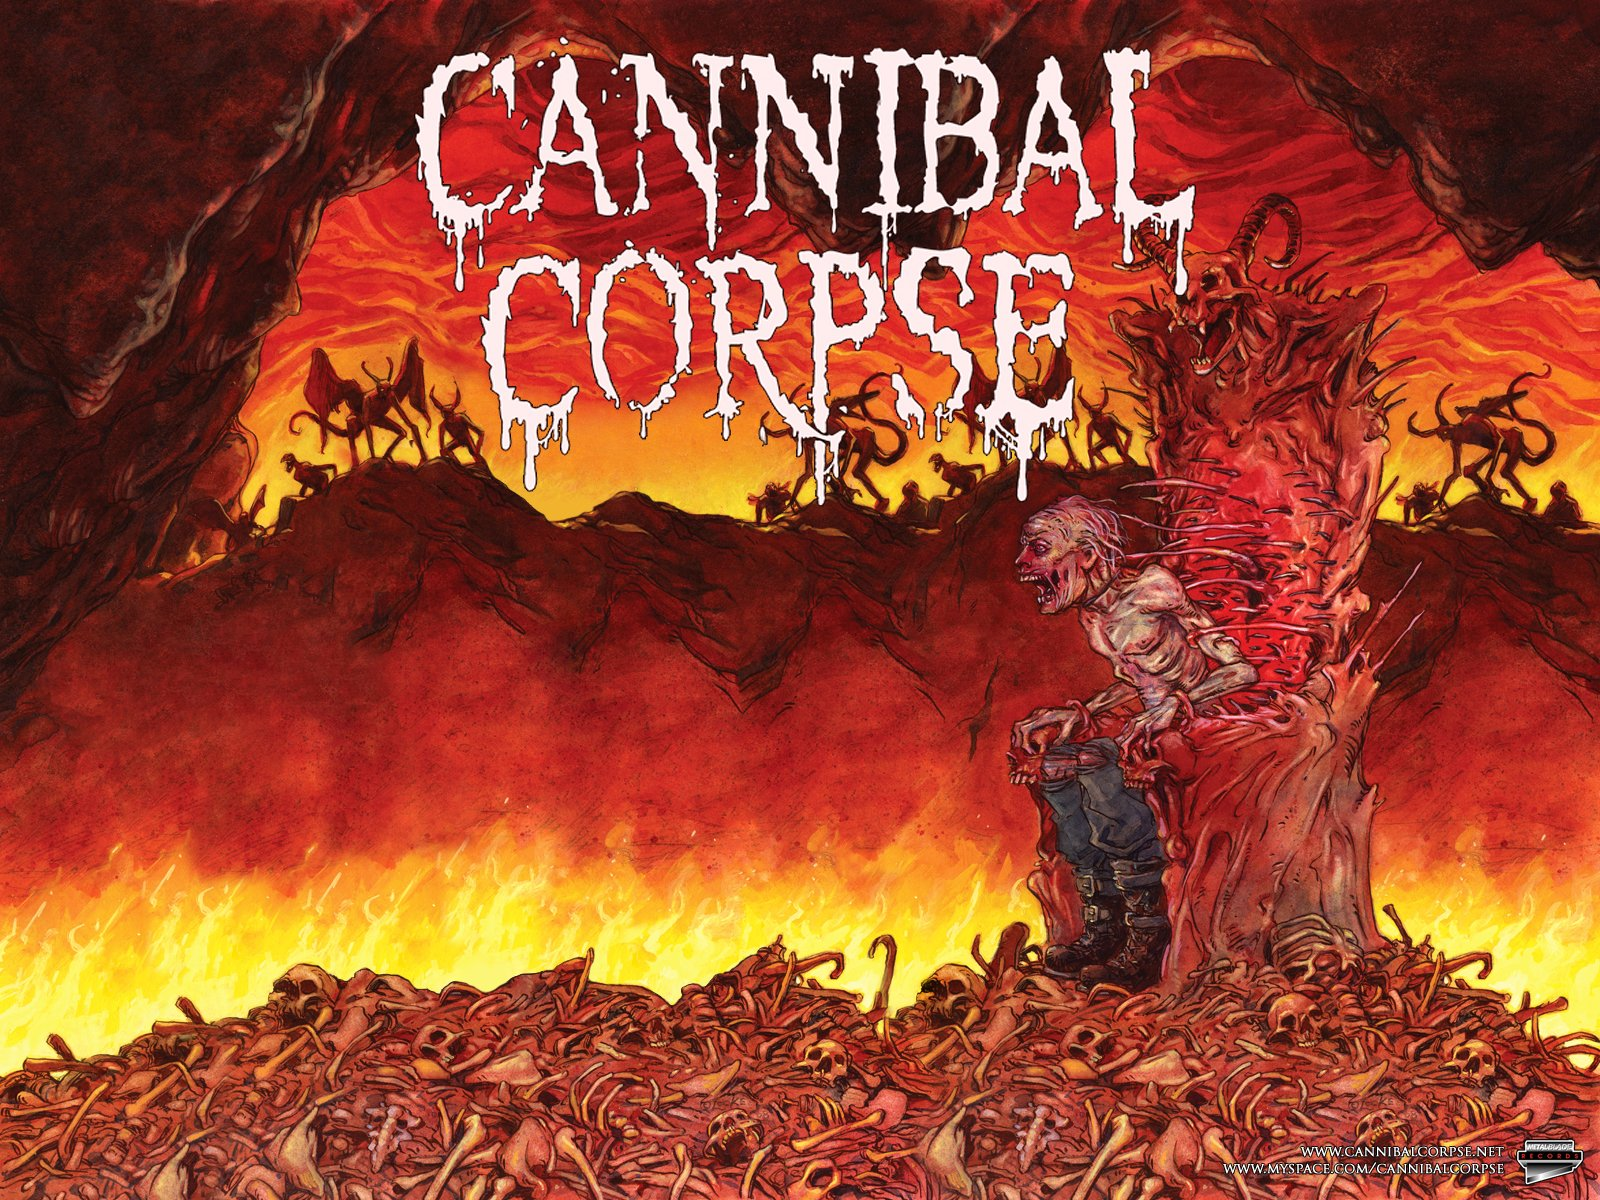 12 Cannibal Corpse Fonds Décran Hd Arrière Plans Wallpaper Abyss